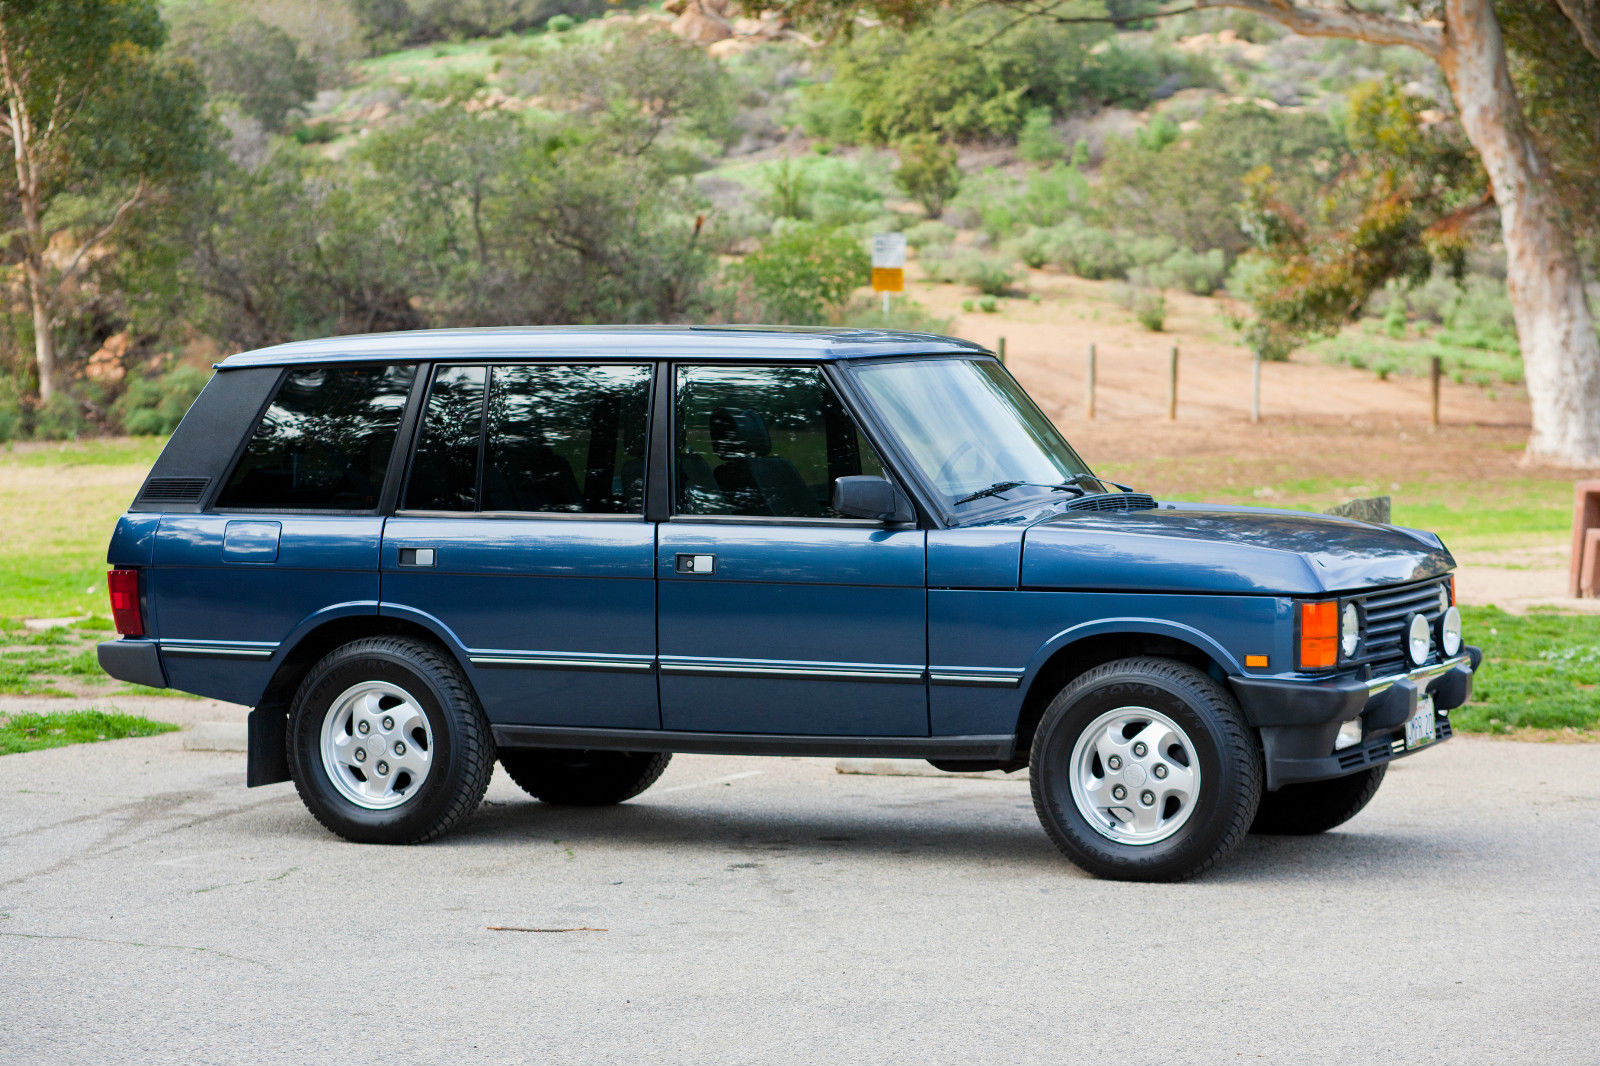 1995 Range Rover For Sale >> Spotted: 1995 Range Rover Classic LWB // West County Explorers Club